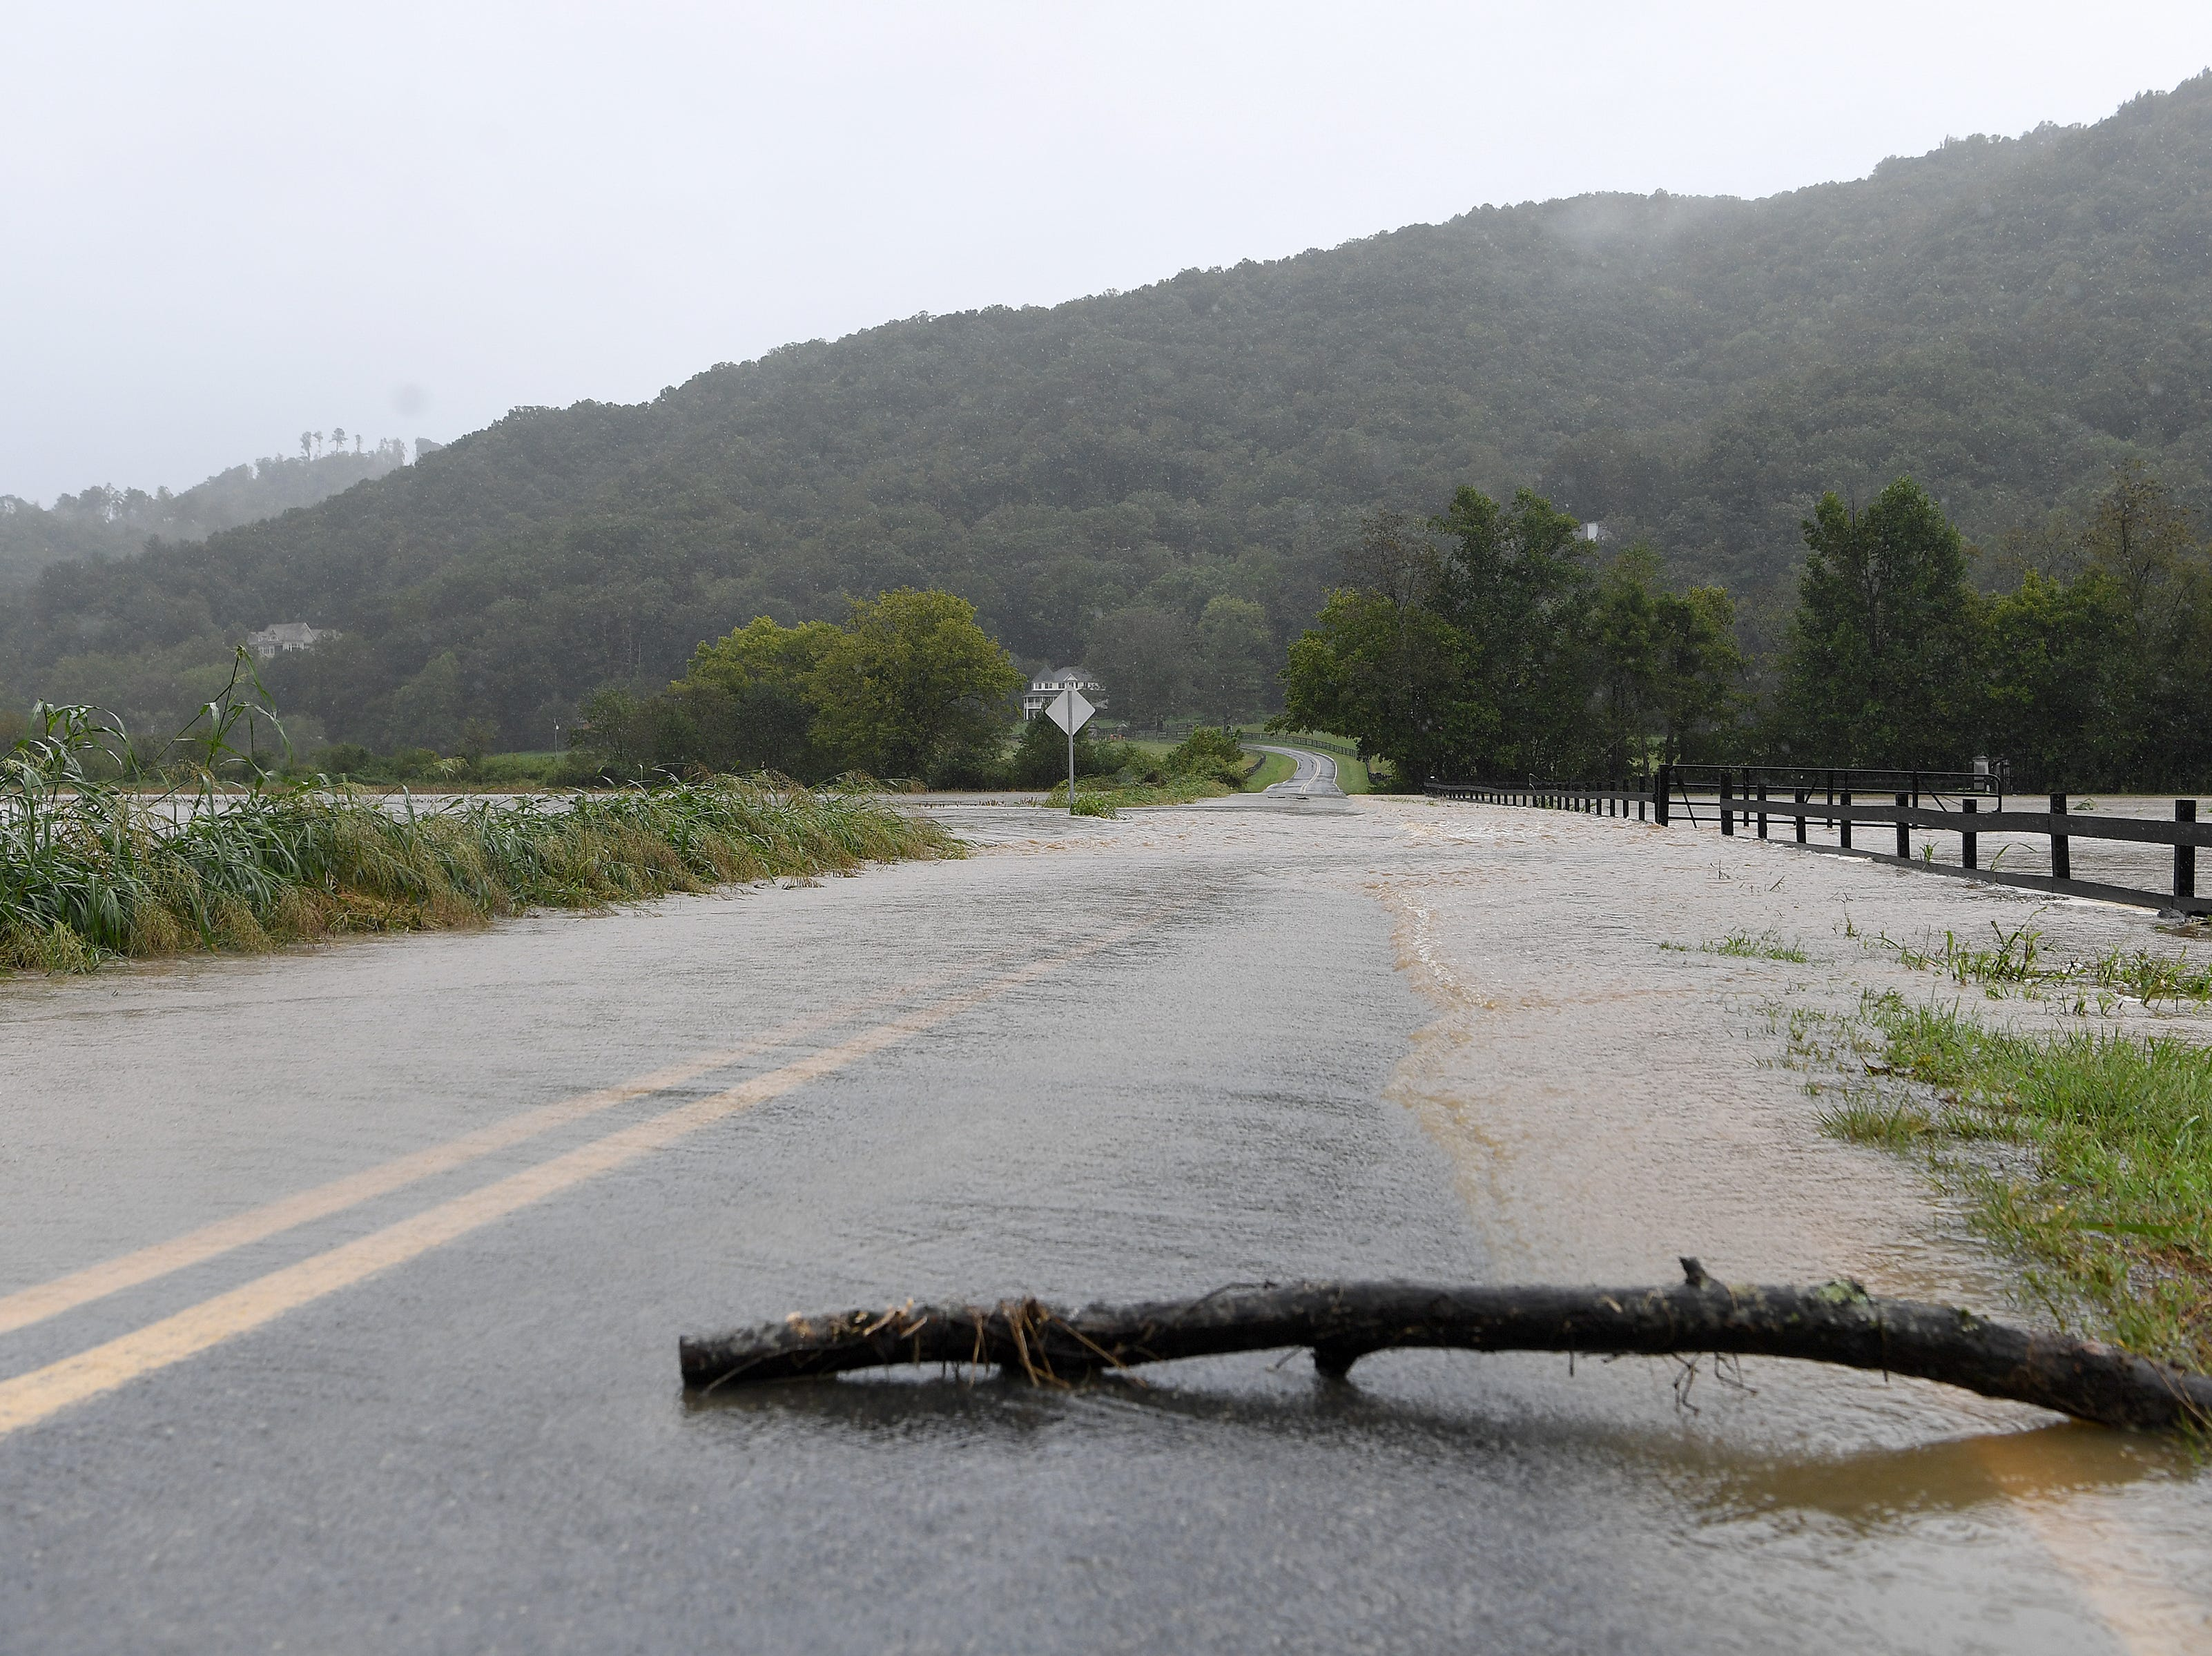 A stick was placed on Lower Brush Creek Road to monitor the rate of flooding as Cane Creek jumps its banks and covers the road in Fletcher with water on Sept. 16, 2018. Hurricane Florence, now downgraded to a tropical depression brought sustained rain to the area.